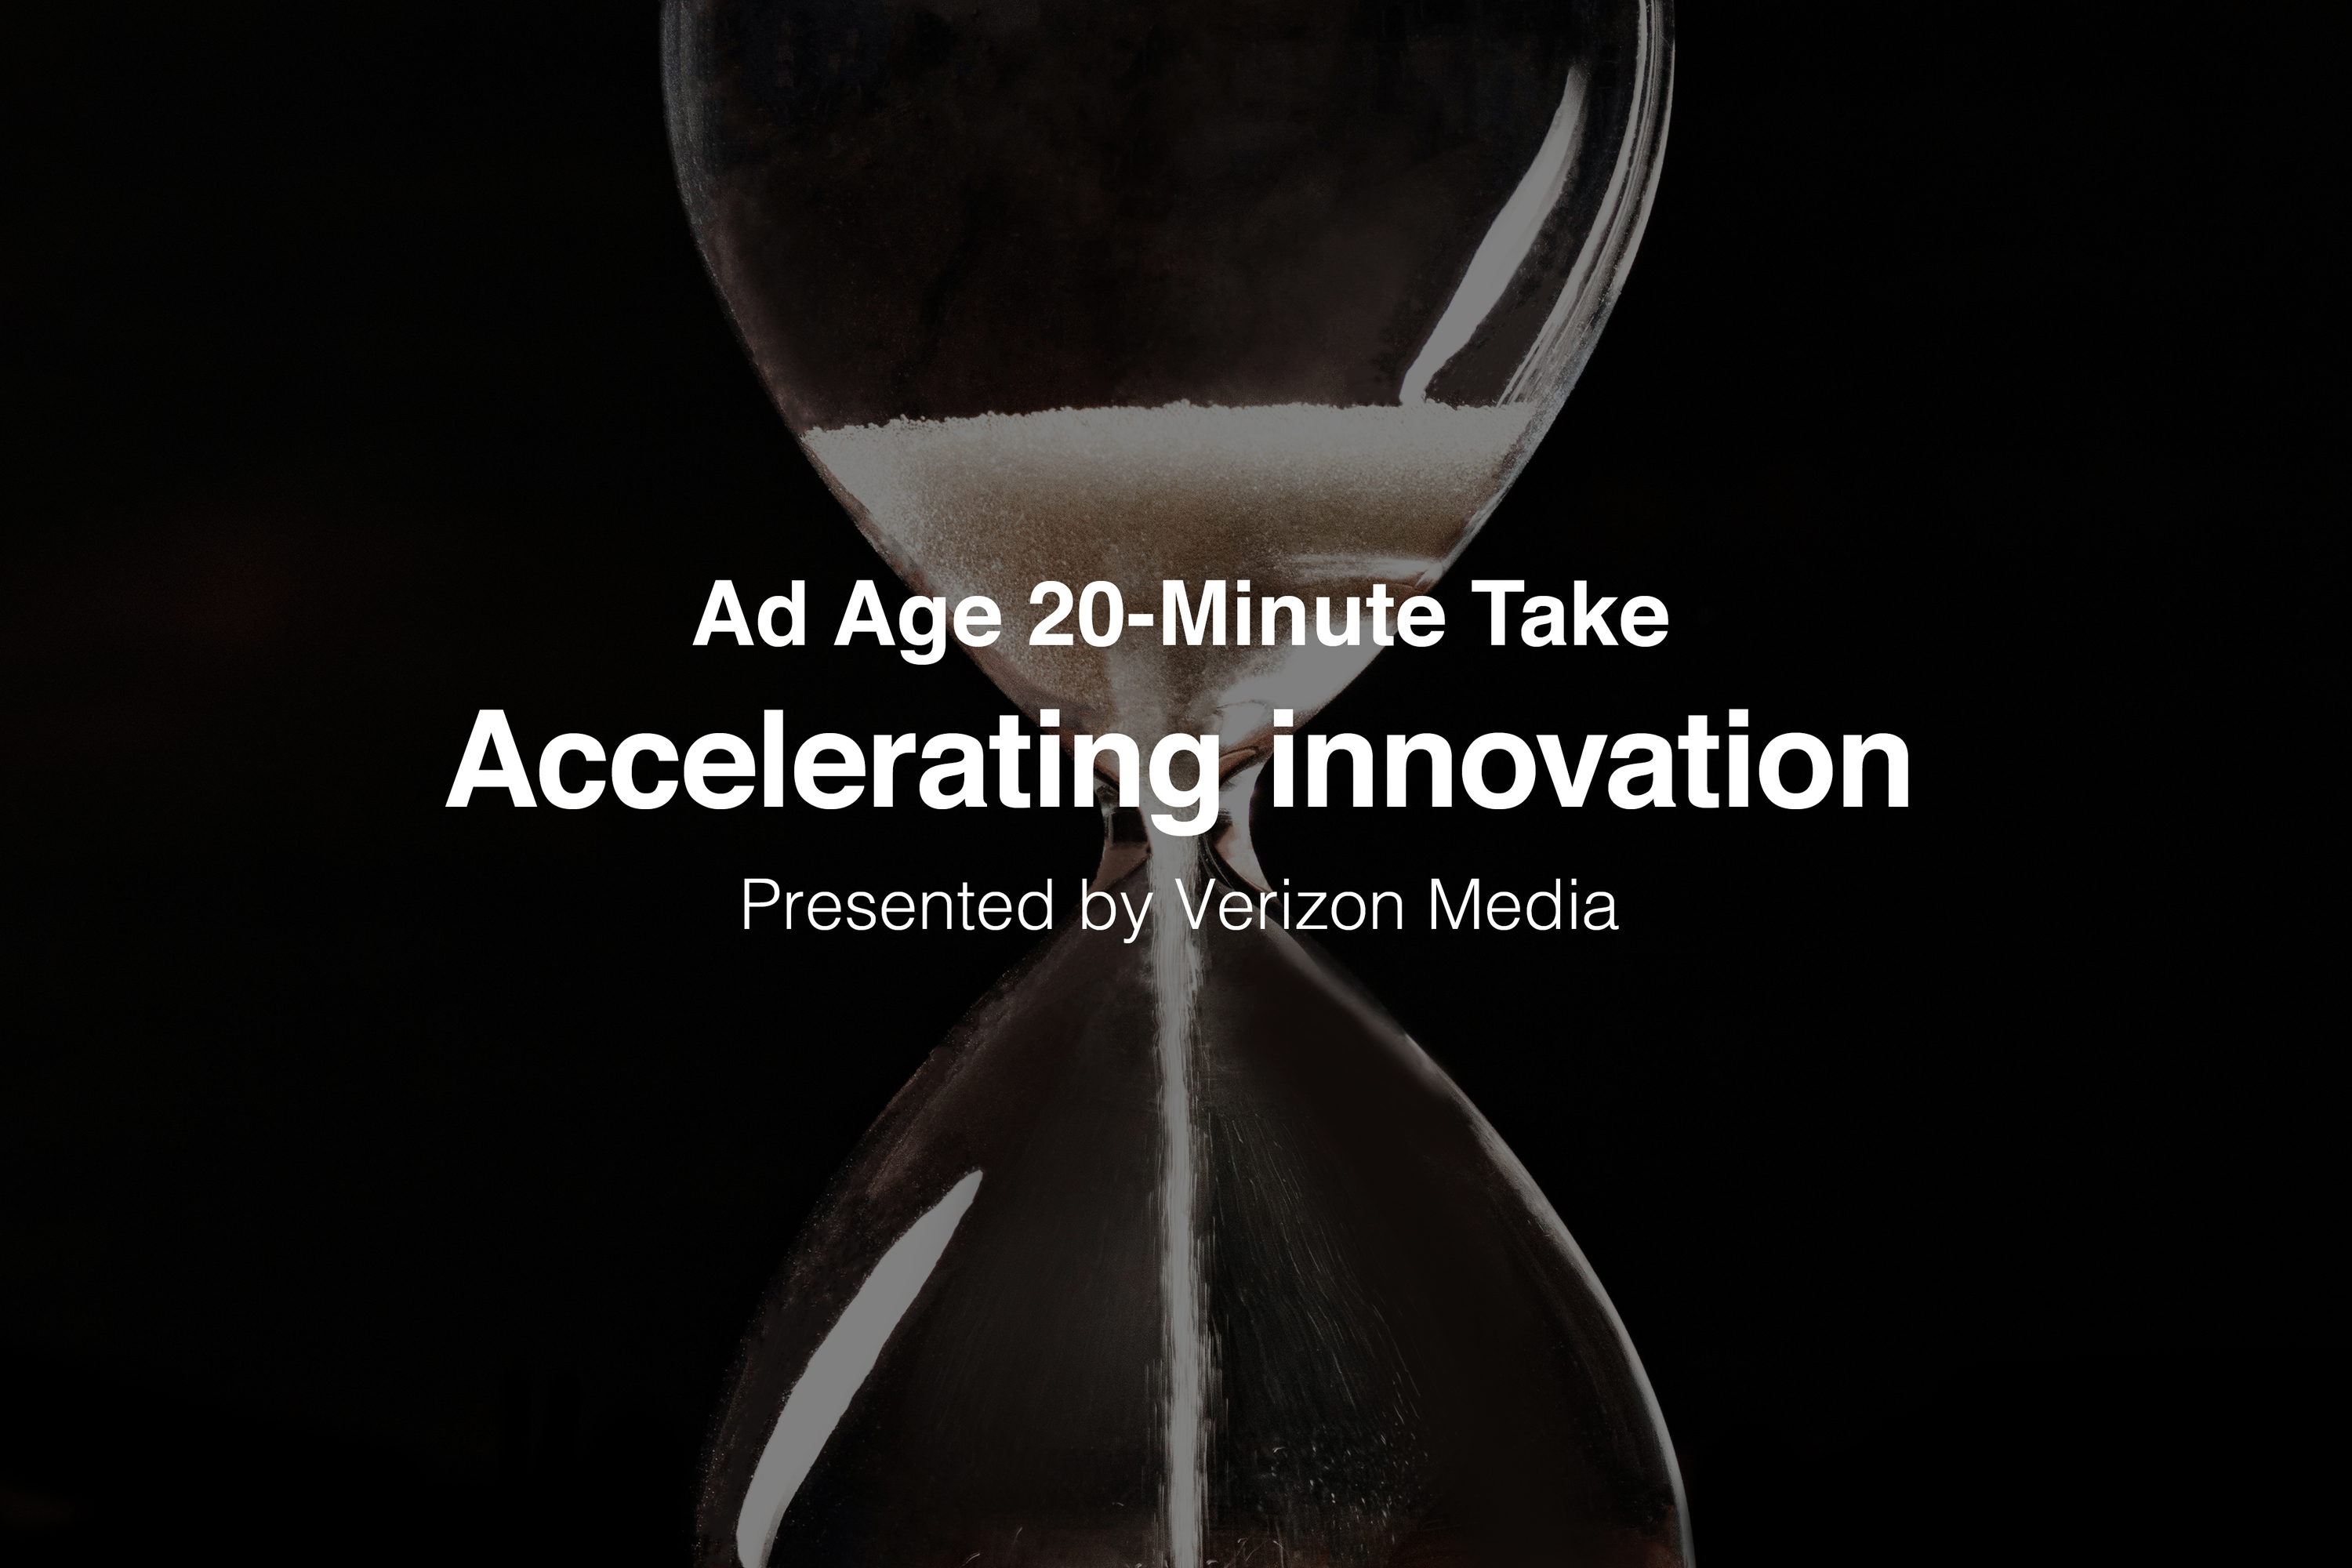 Ad Age 20-Minute Take: Accelerating innovation